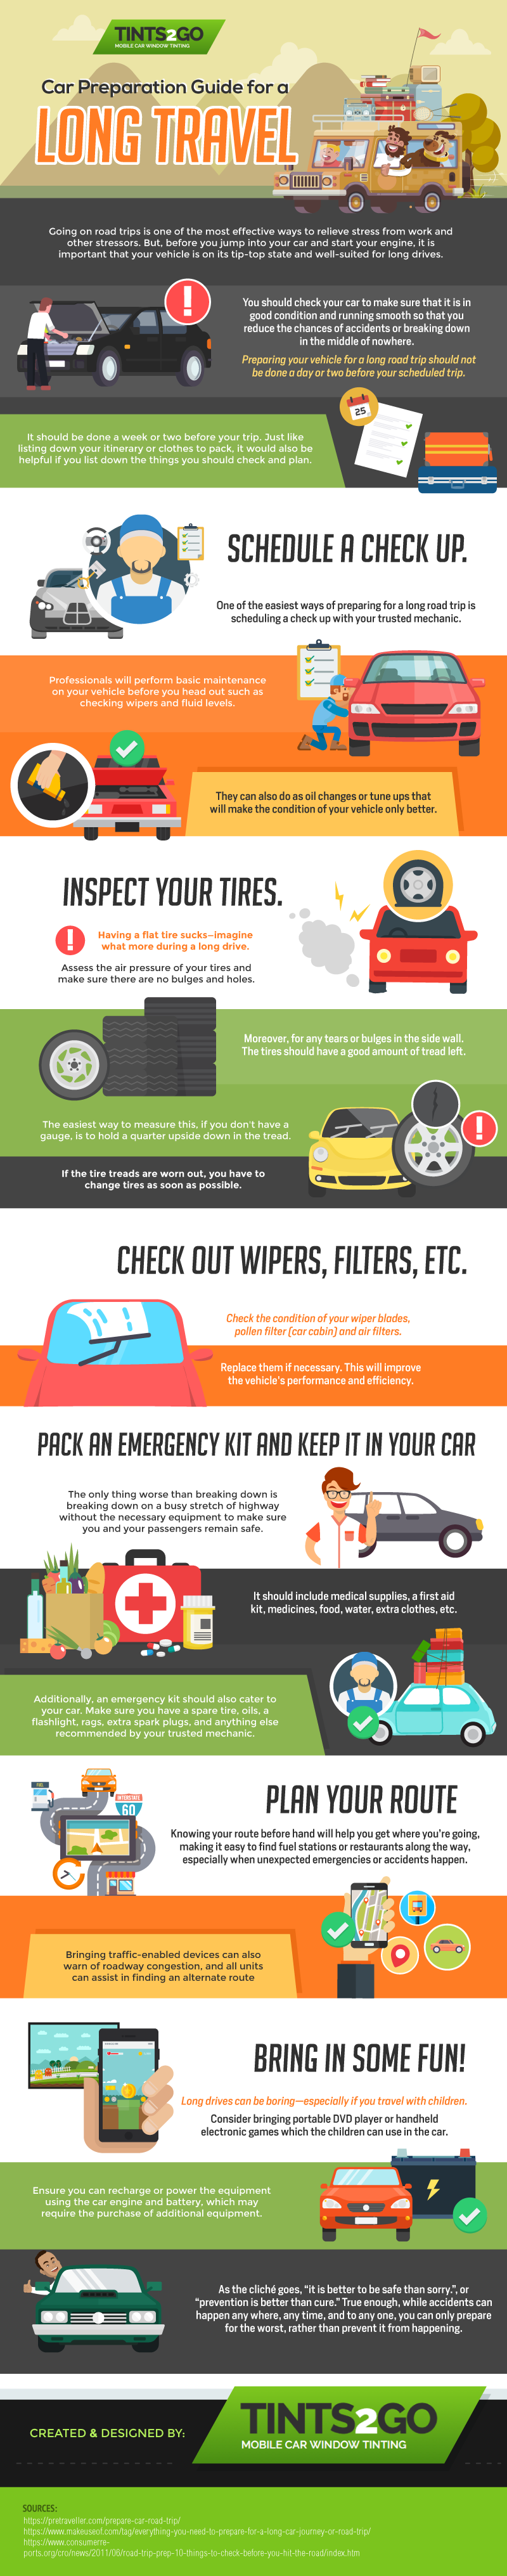 Car Preparation Guide for a Long Travel